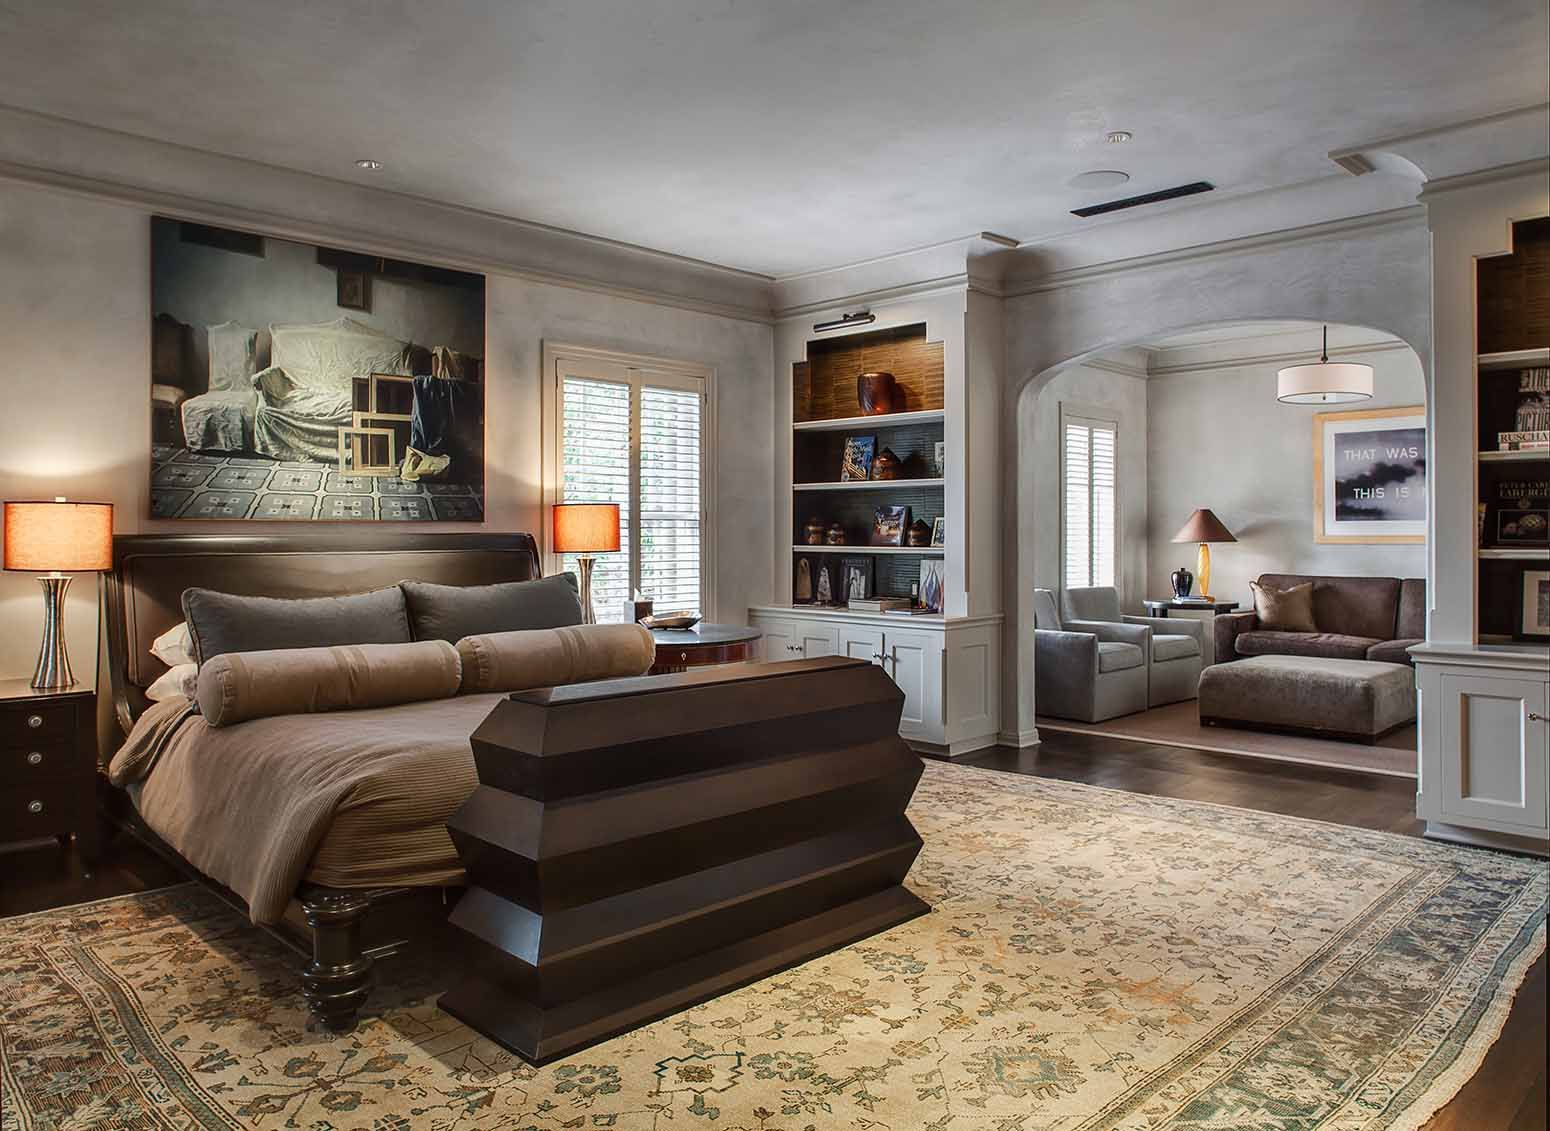 See Inside Lance Armstrong's Sprawling Texas Home